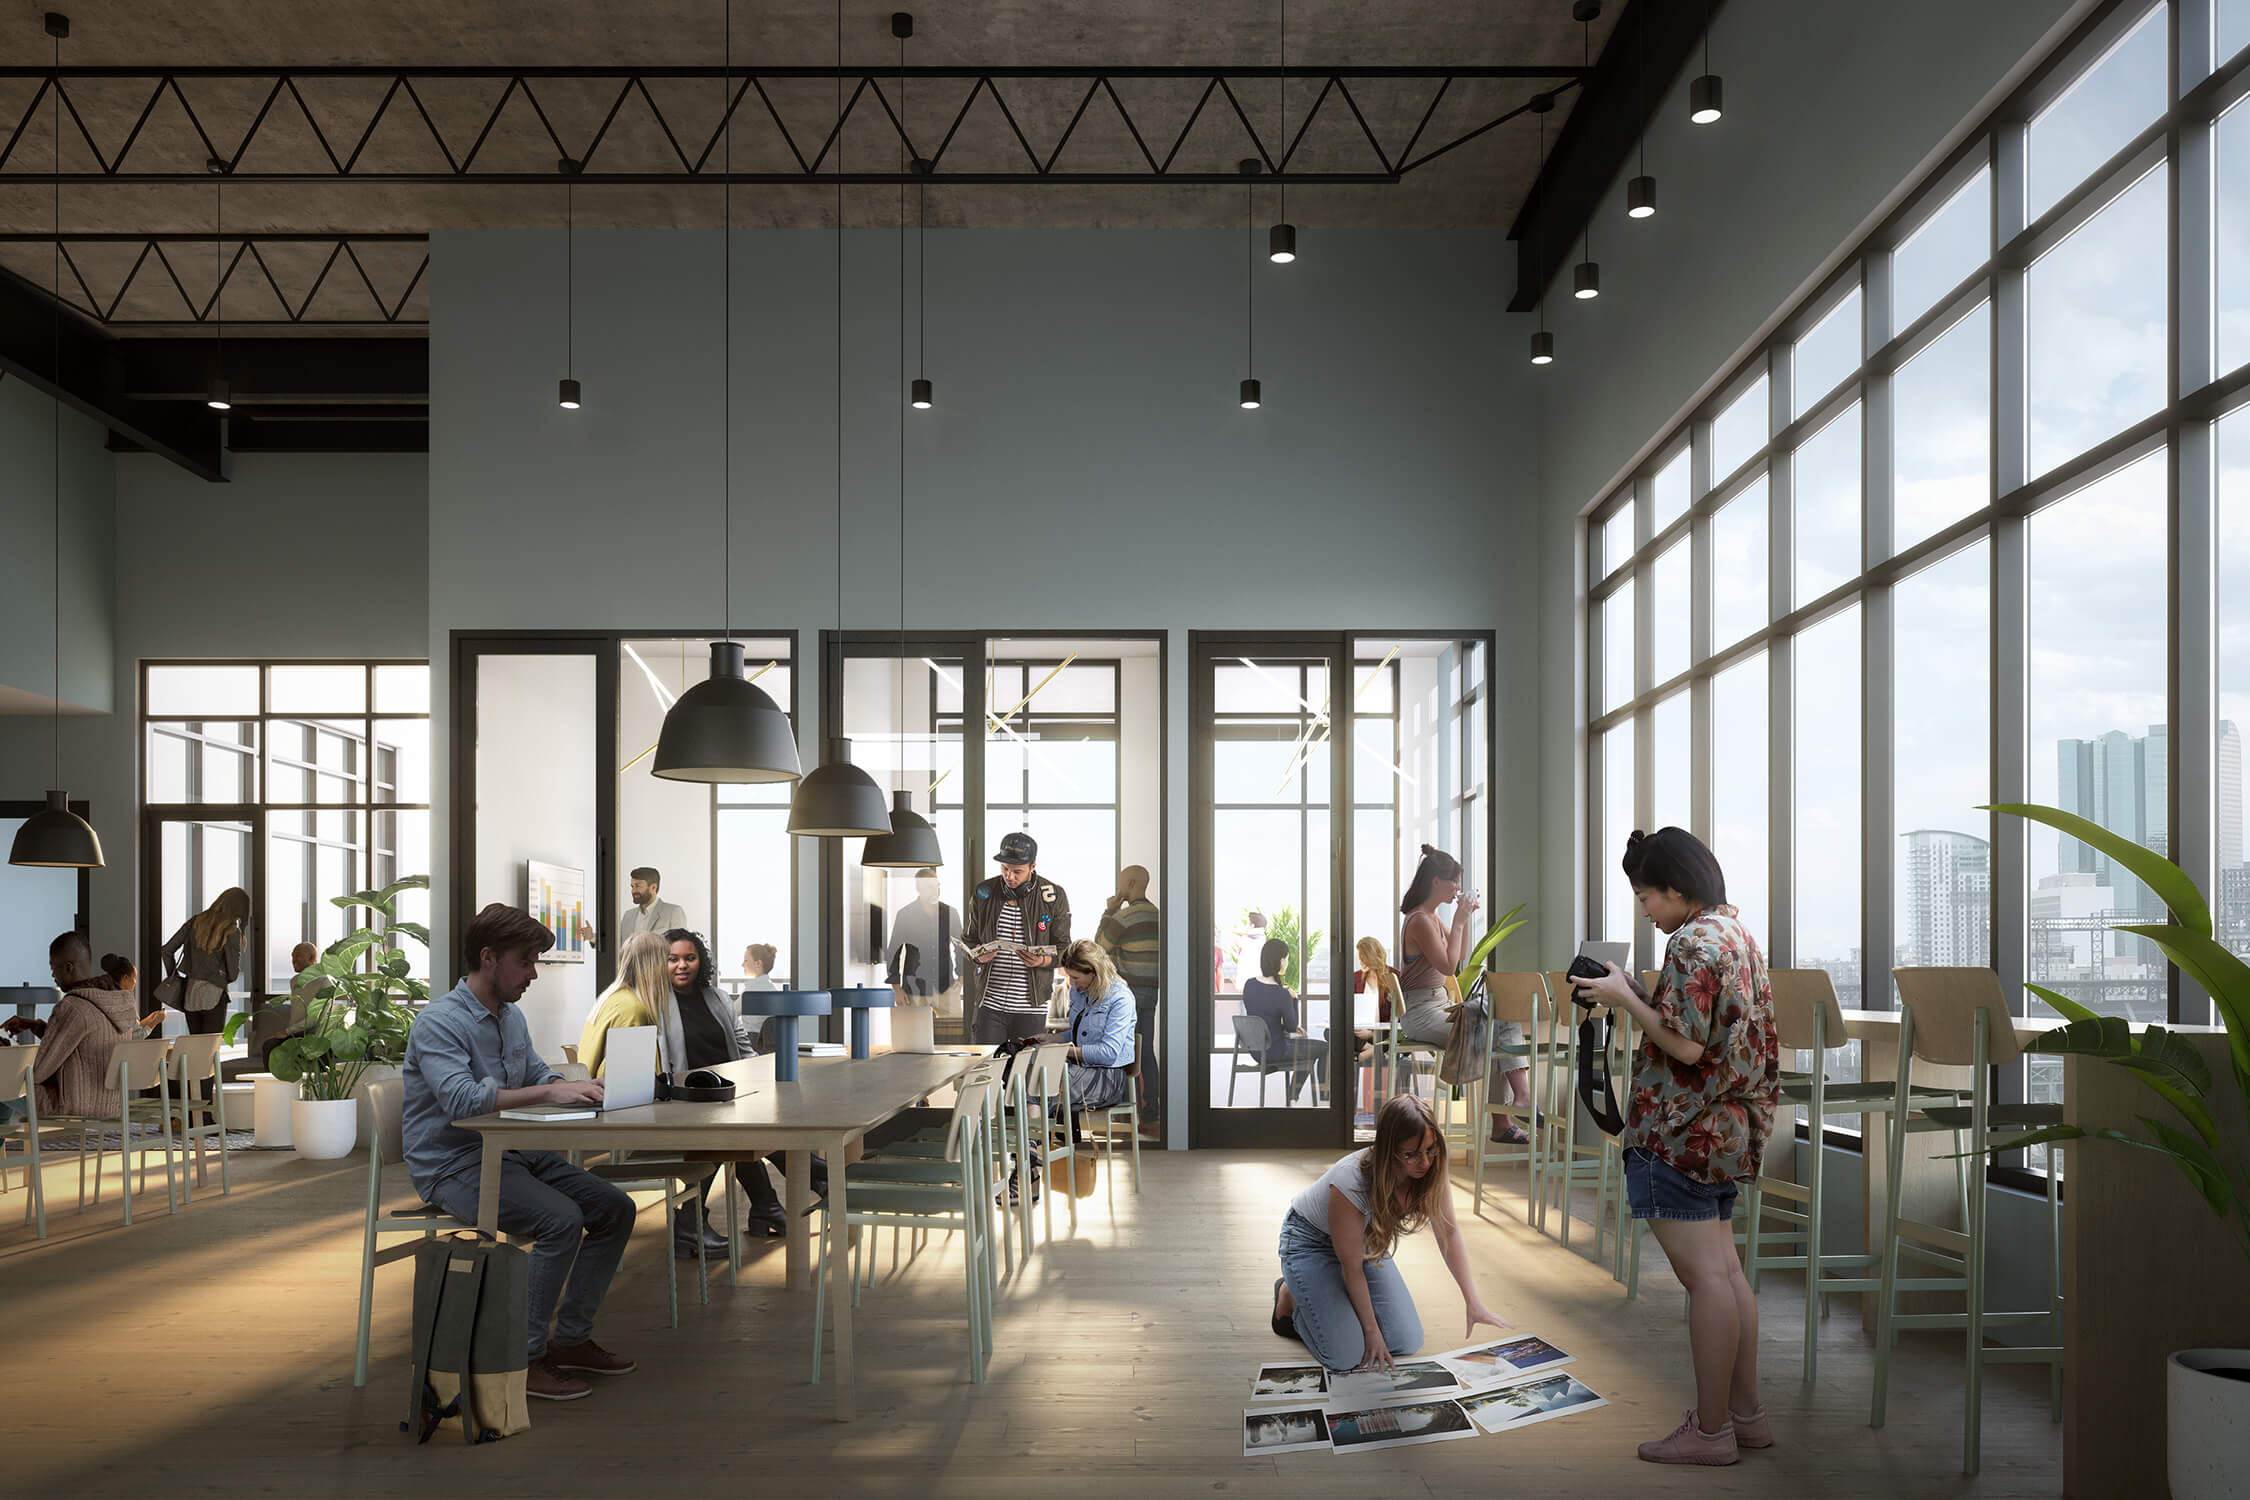 X Denver coworking space with people working at community desks and in offices